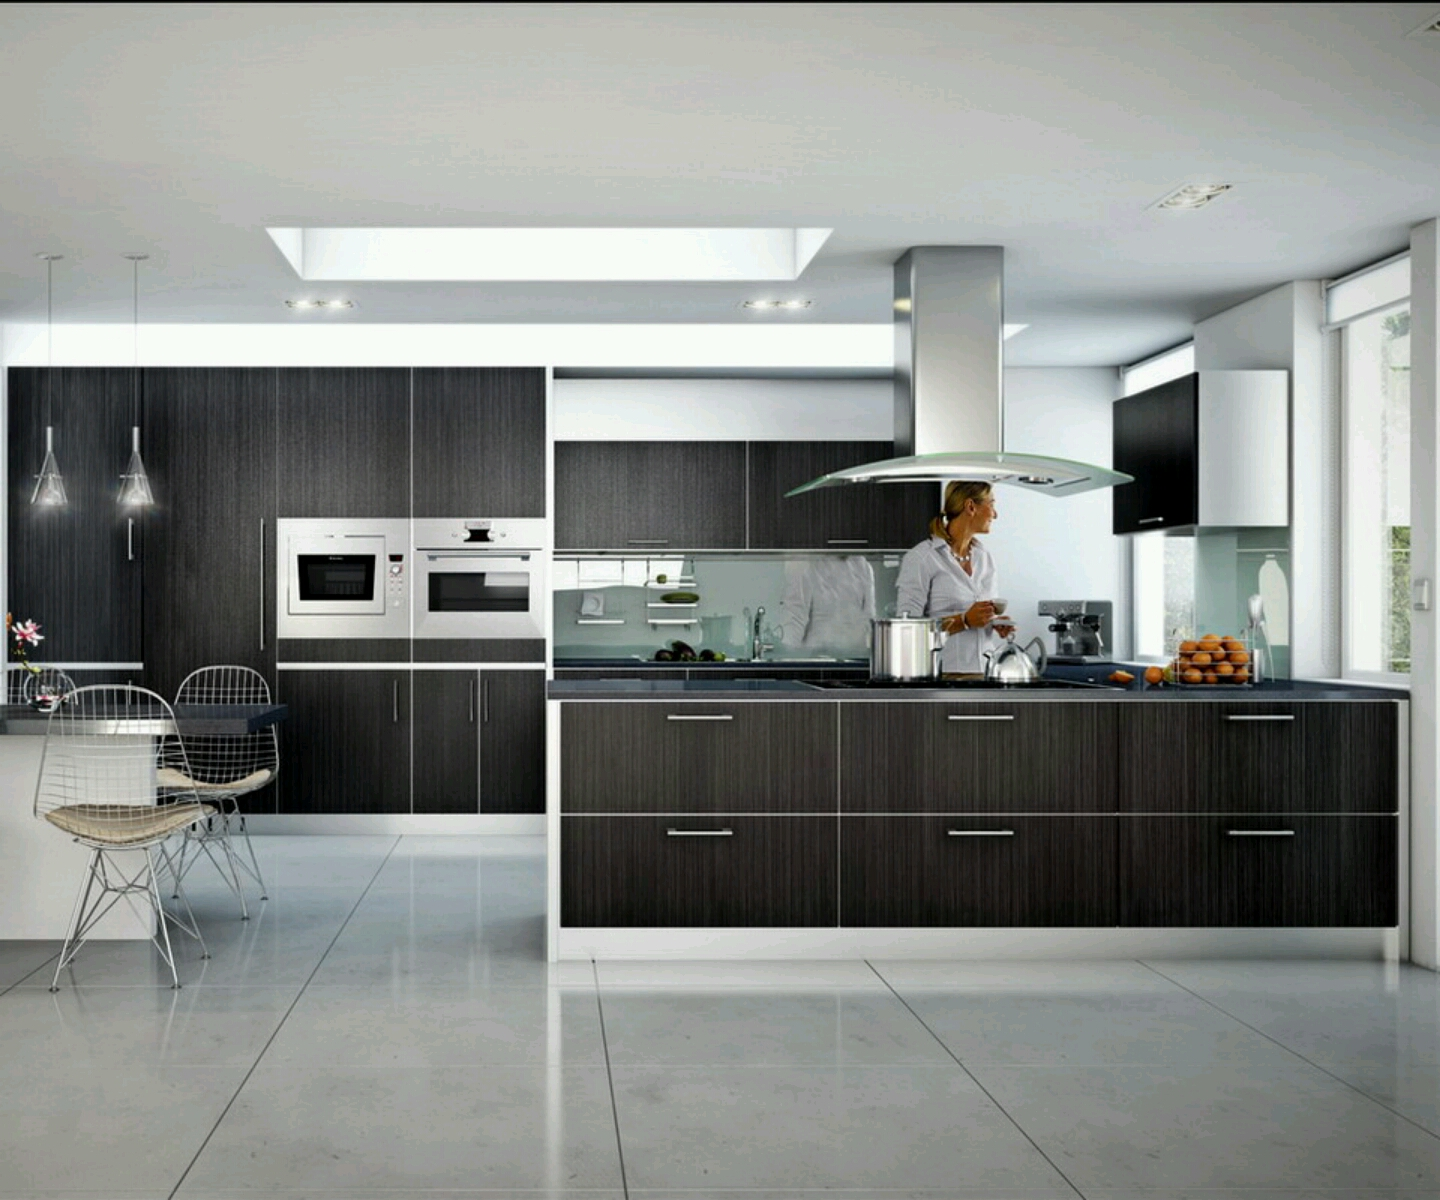 kitchen design pictures modern rumah rumah minimalis modern homes ultra modern kitchen 404